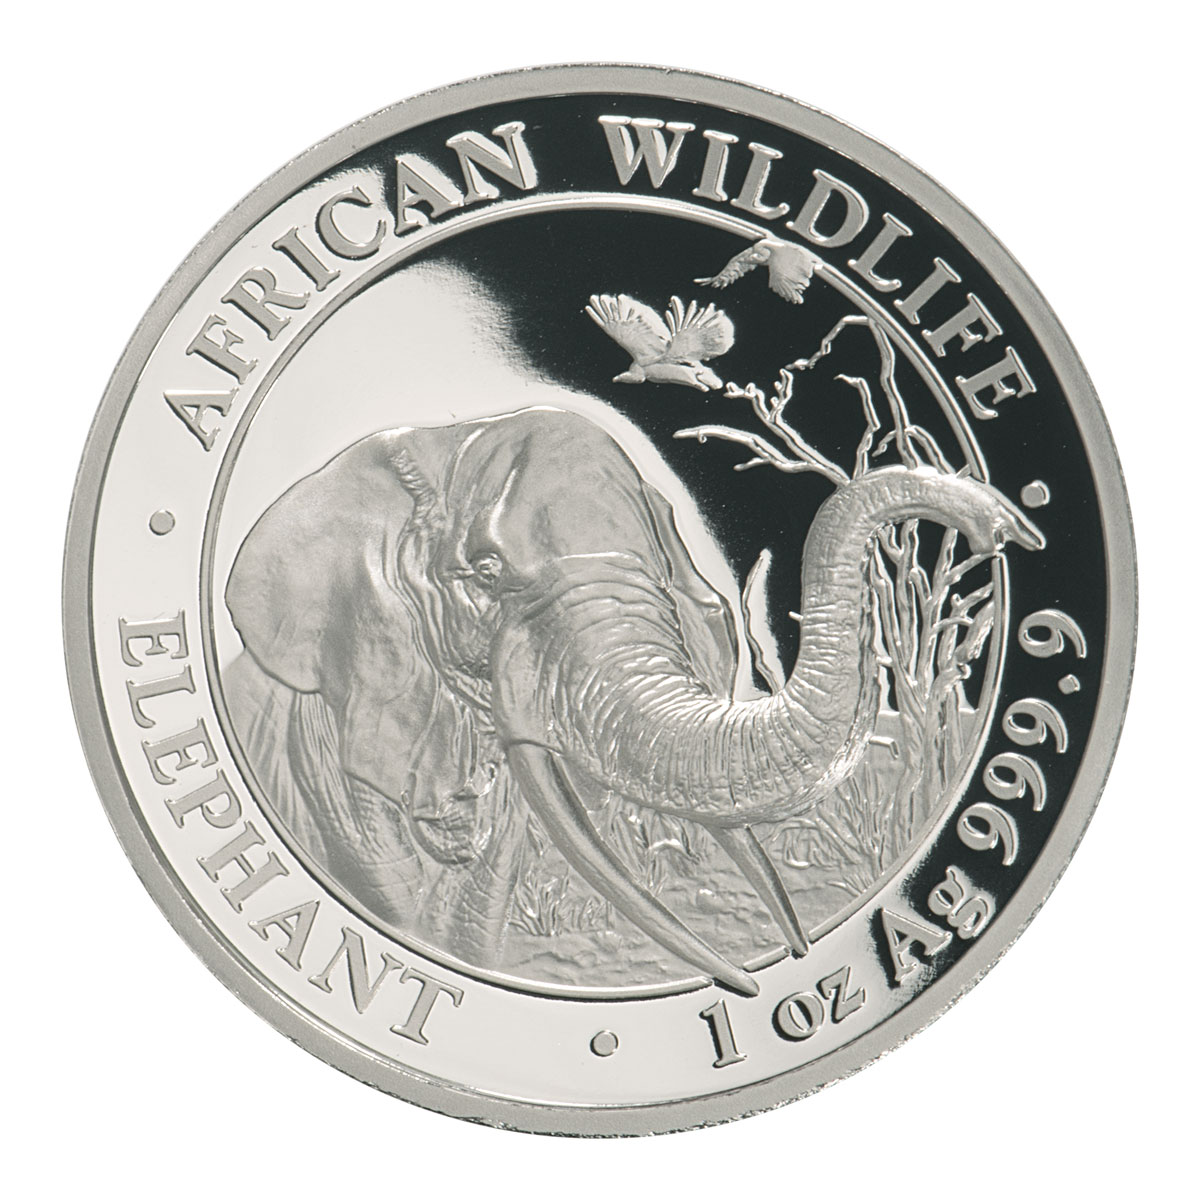 2018 Somalia 1 oz High Relief Silver Elephant Proof Sh100 Coin GEM Proof OGP